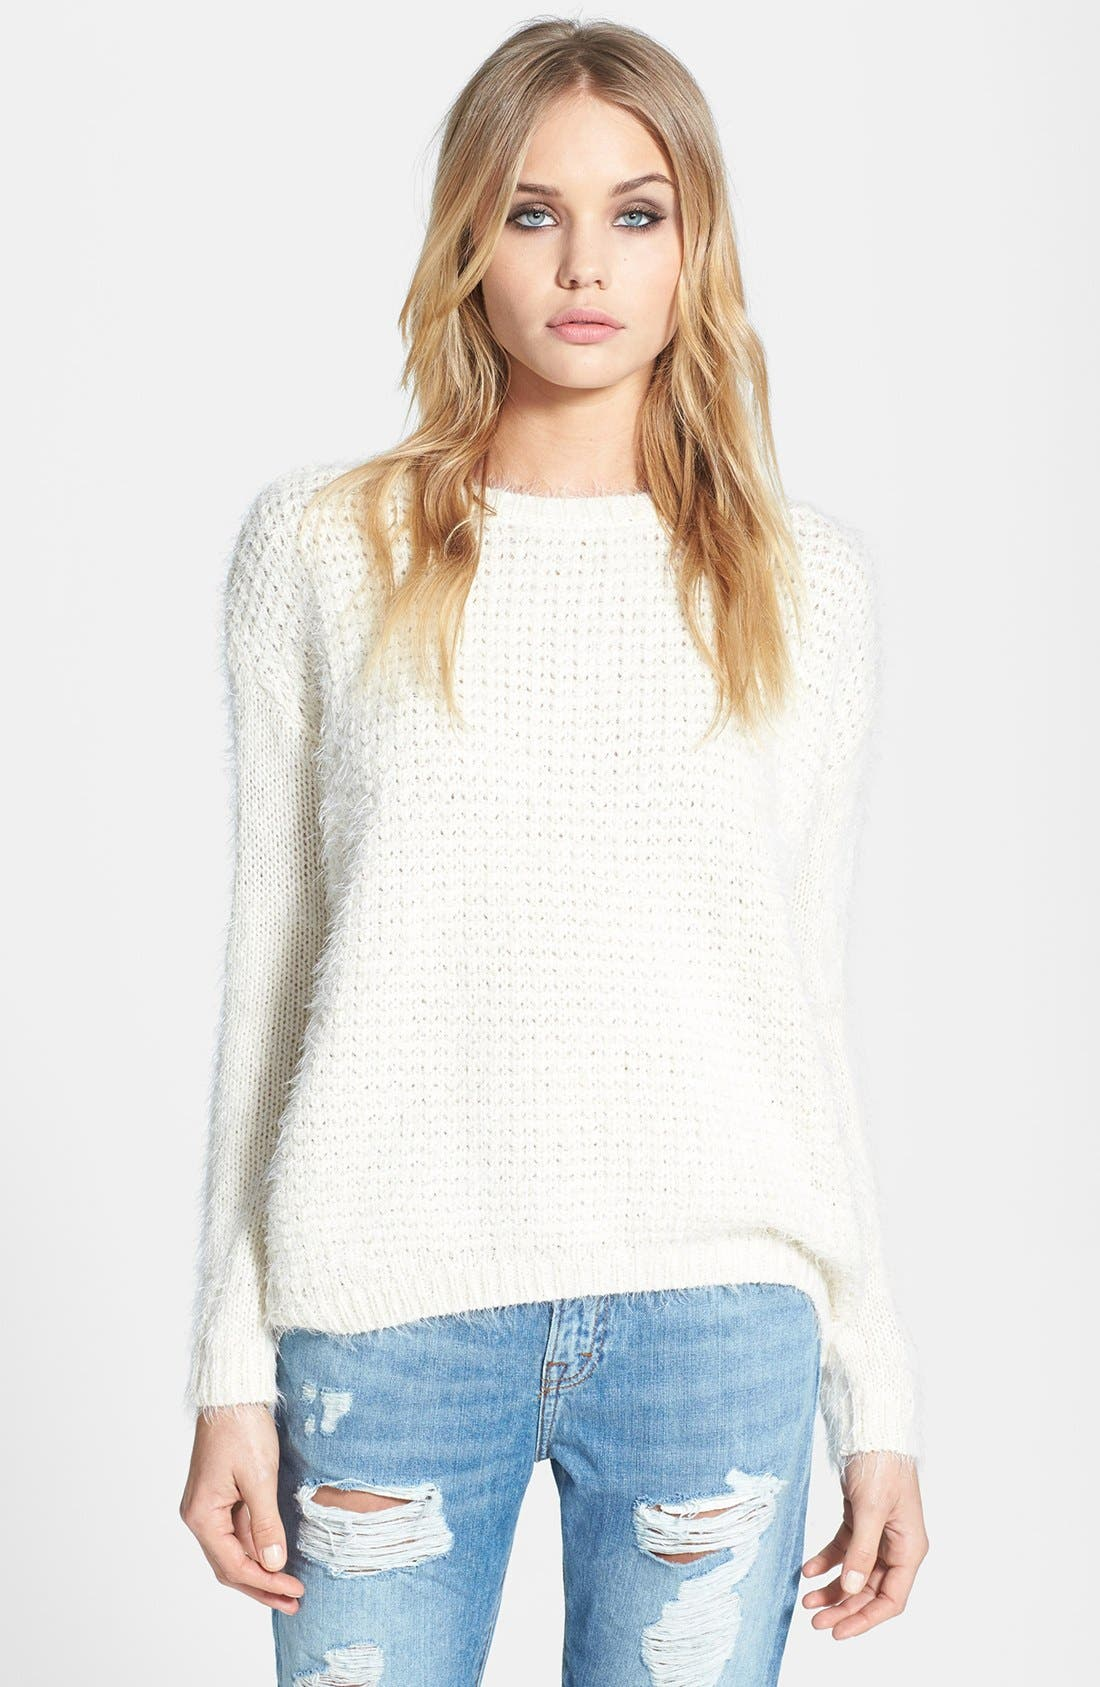 Alternate Image 1 Selected - Topshop 'Monster Stitch' Textured Knit Sweater